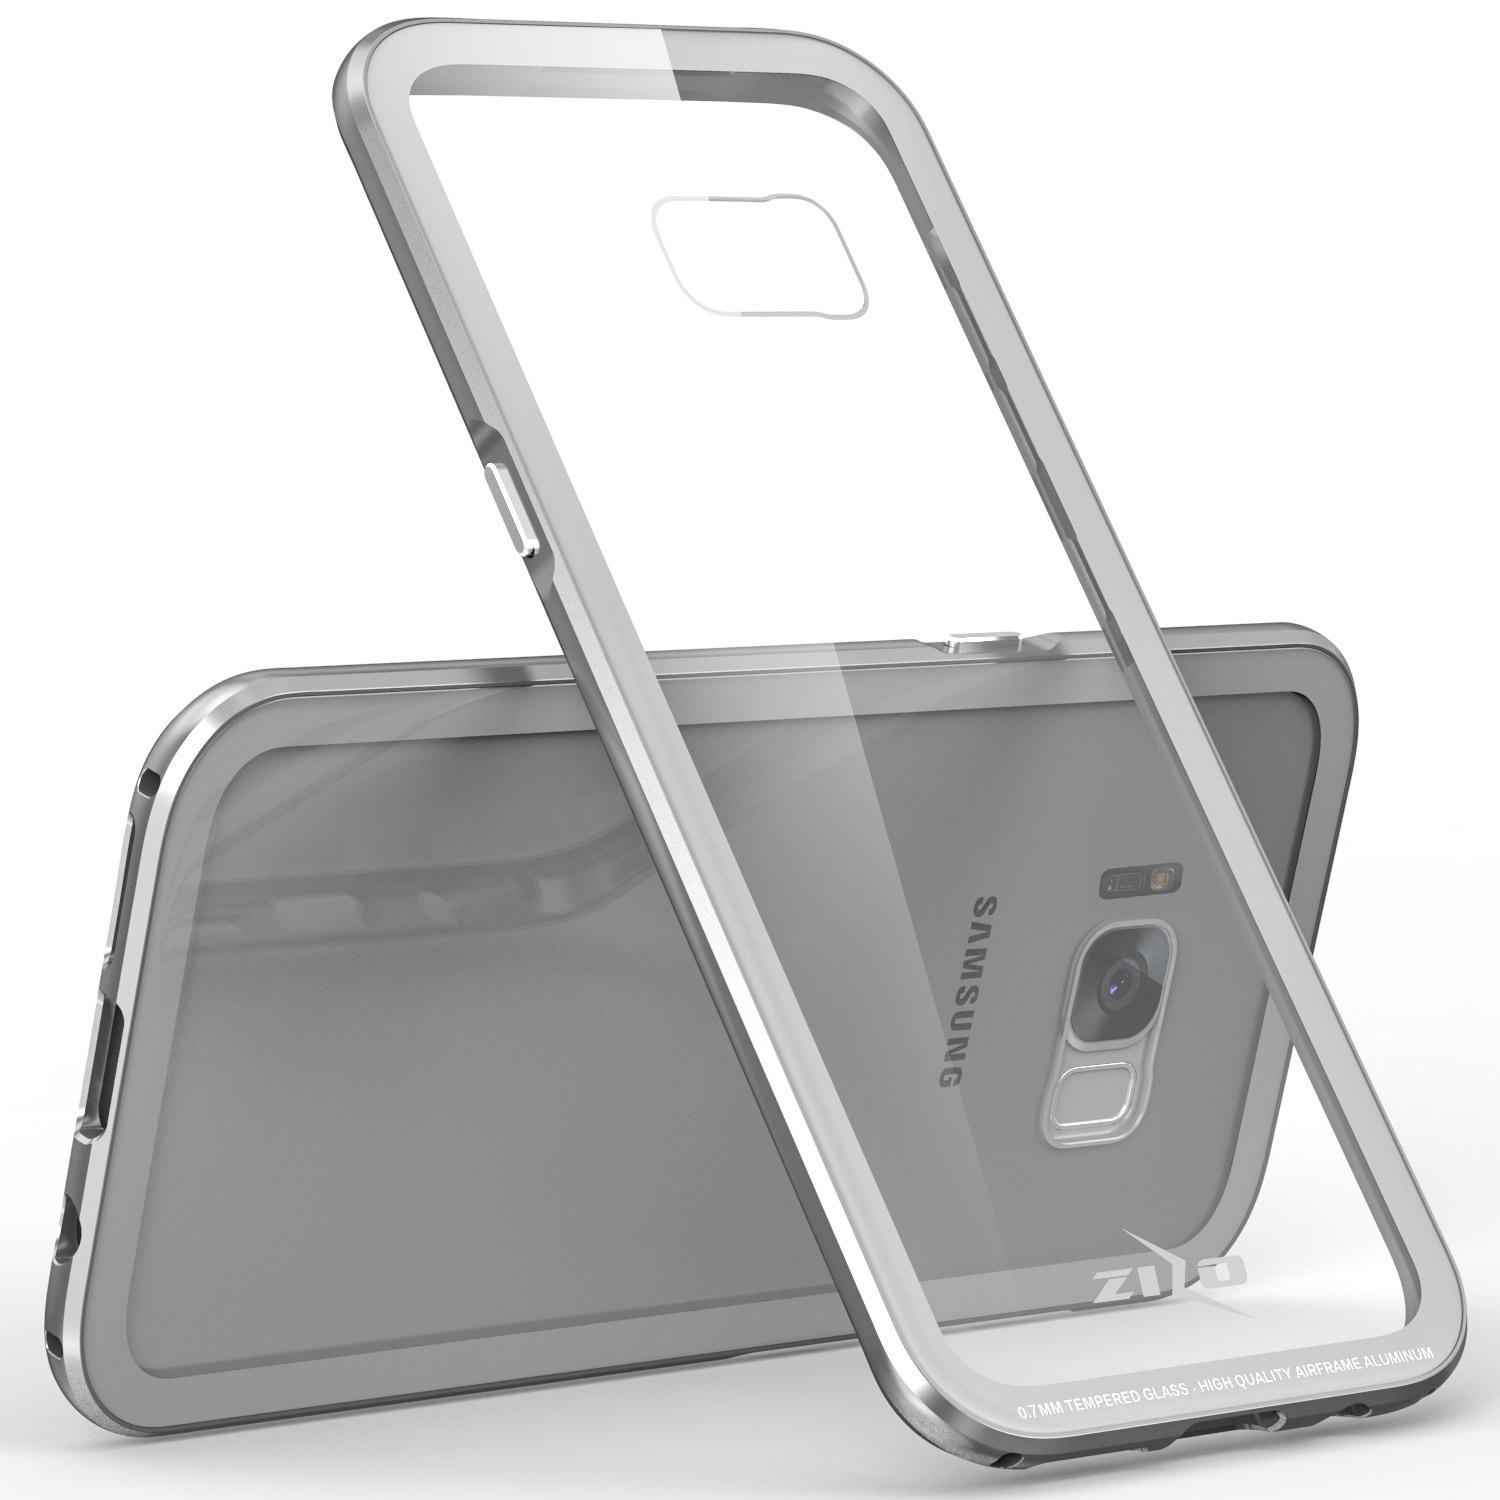 how to put on s8 screen protector